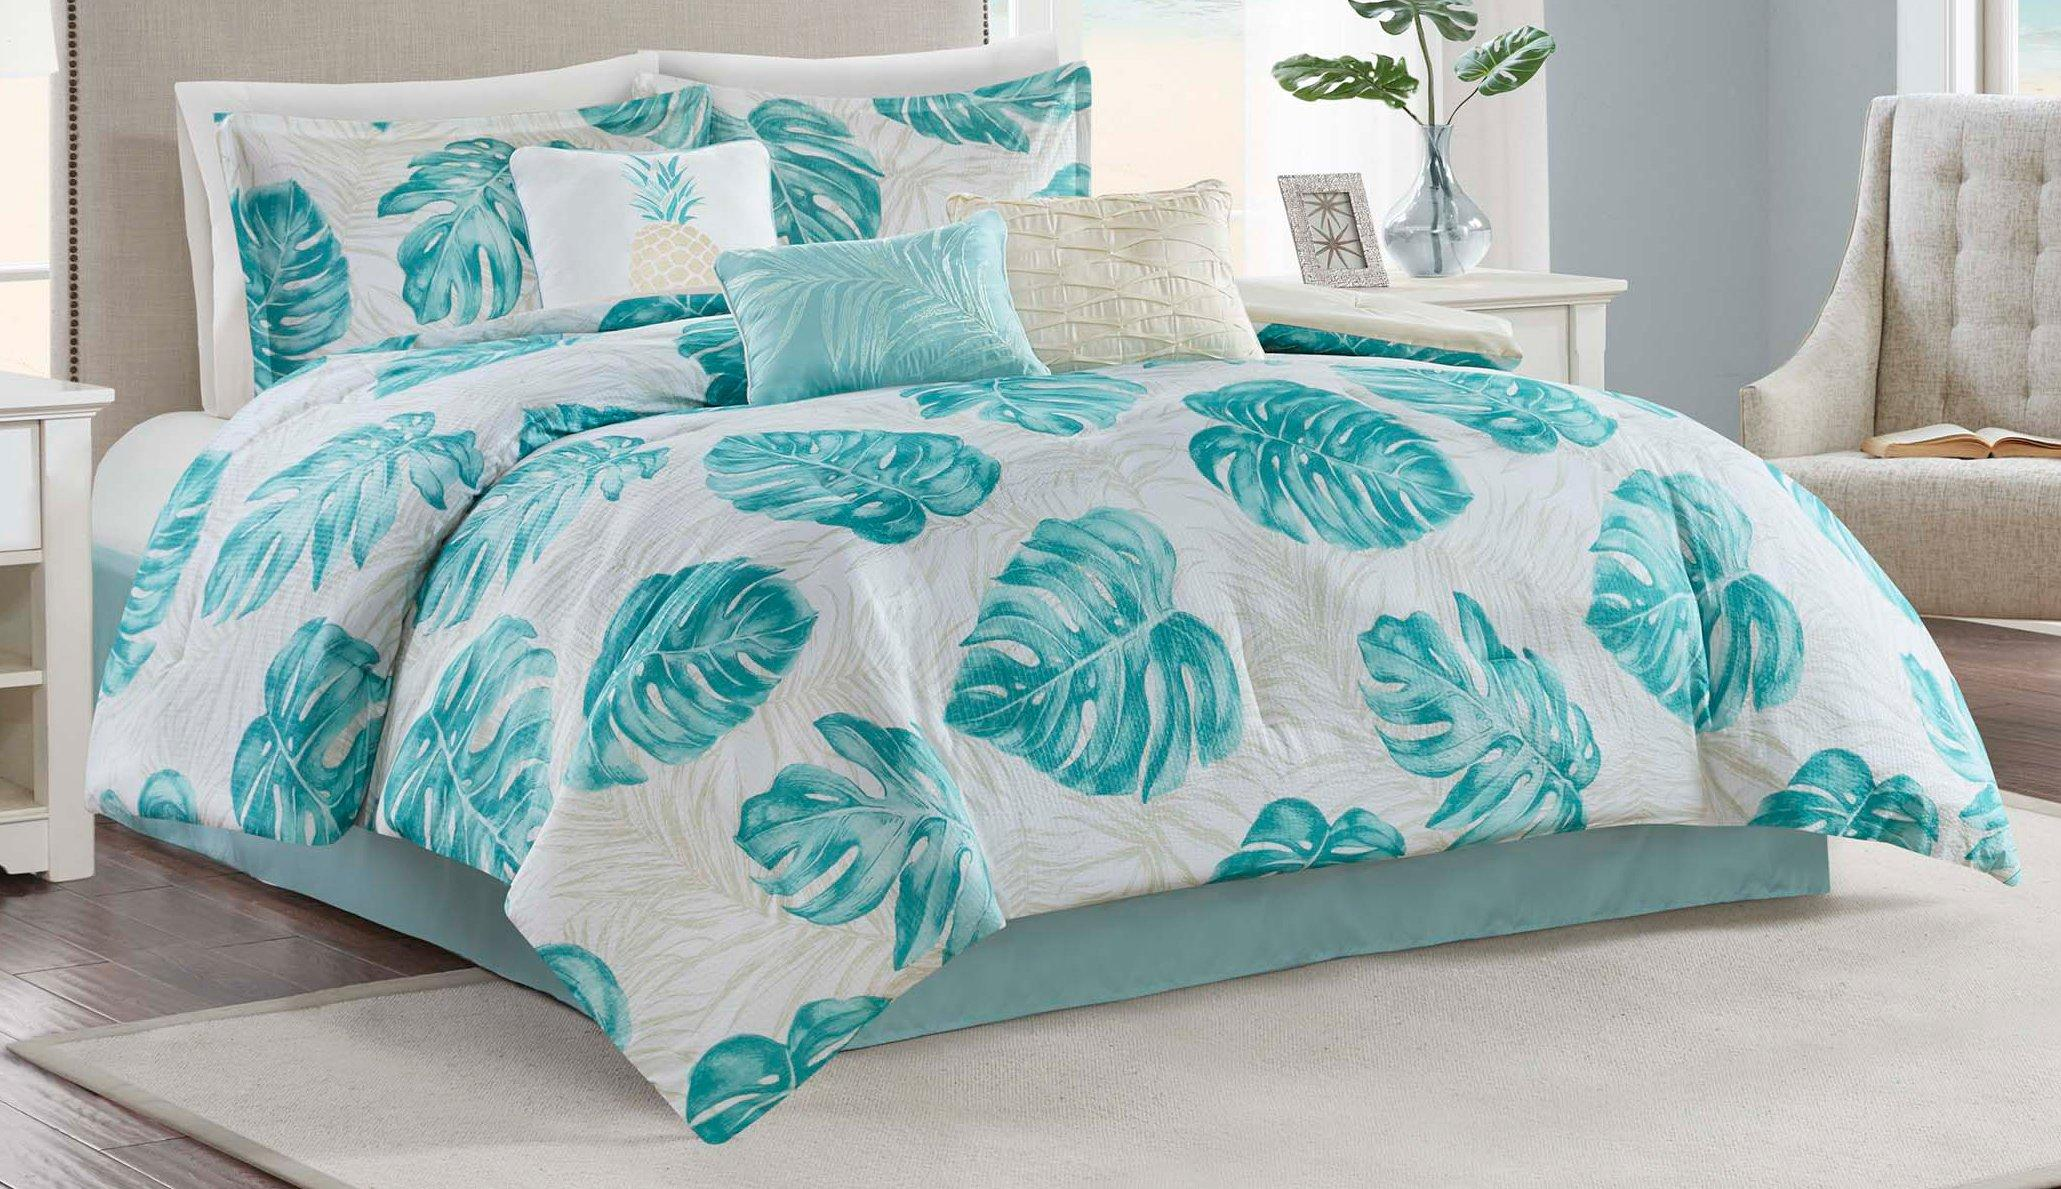 3 Piece Bed In A Bag Turquoise Blue Aqua Girls Twin Single Comforter Set New~